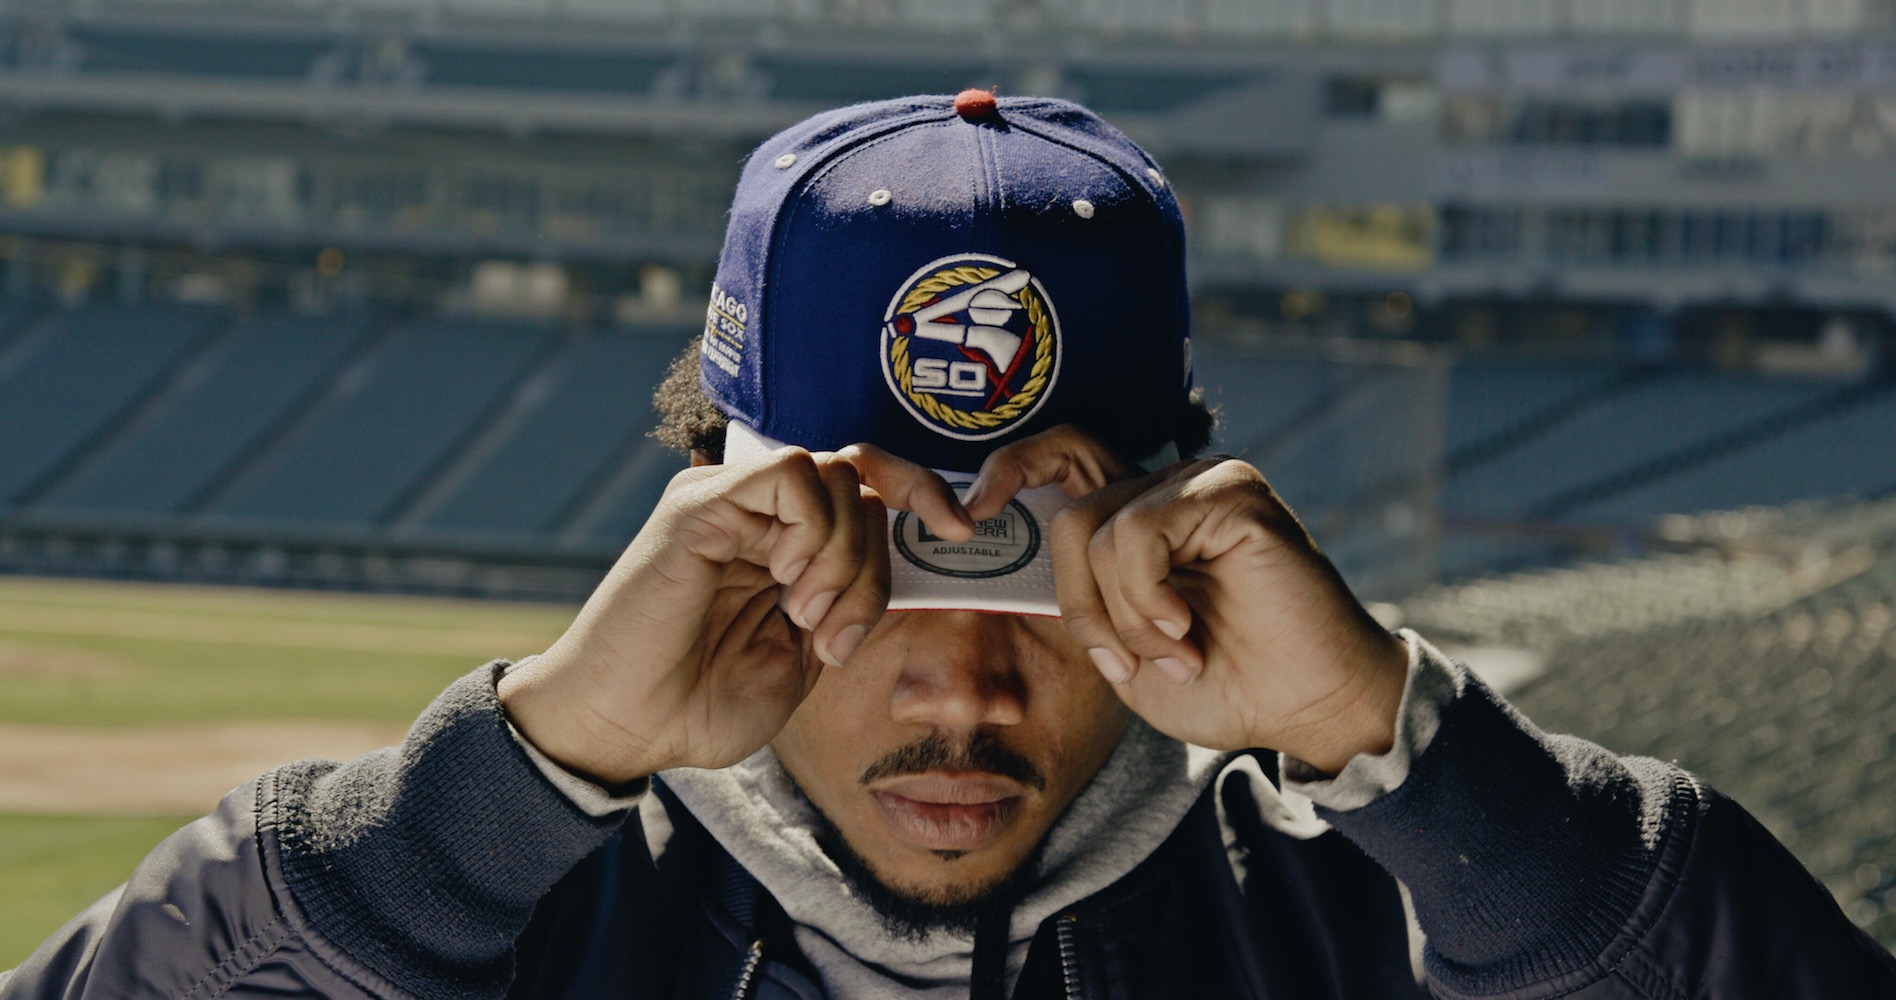 Chance in Blue Cap.JPG